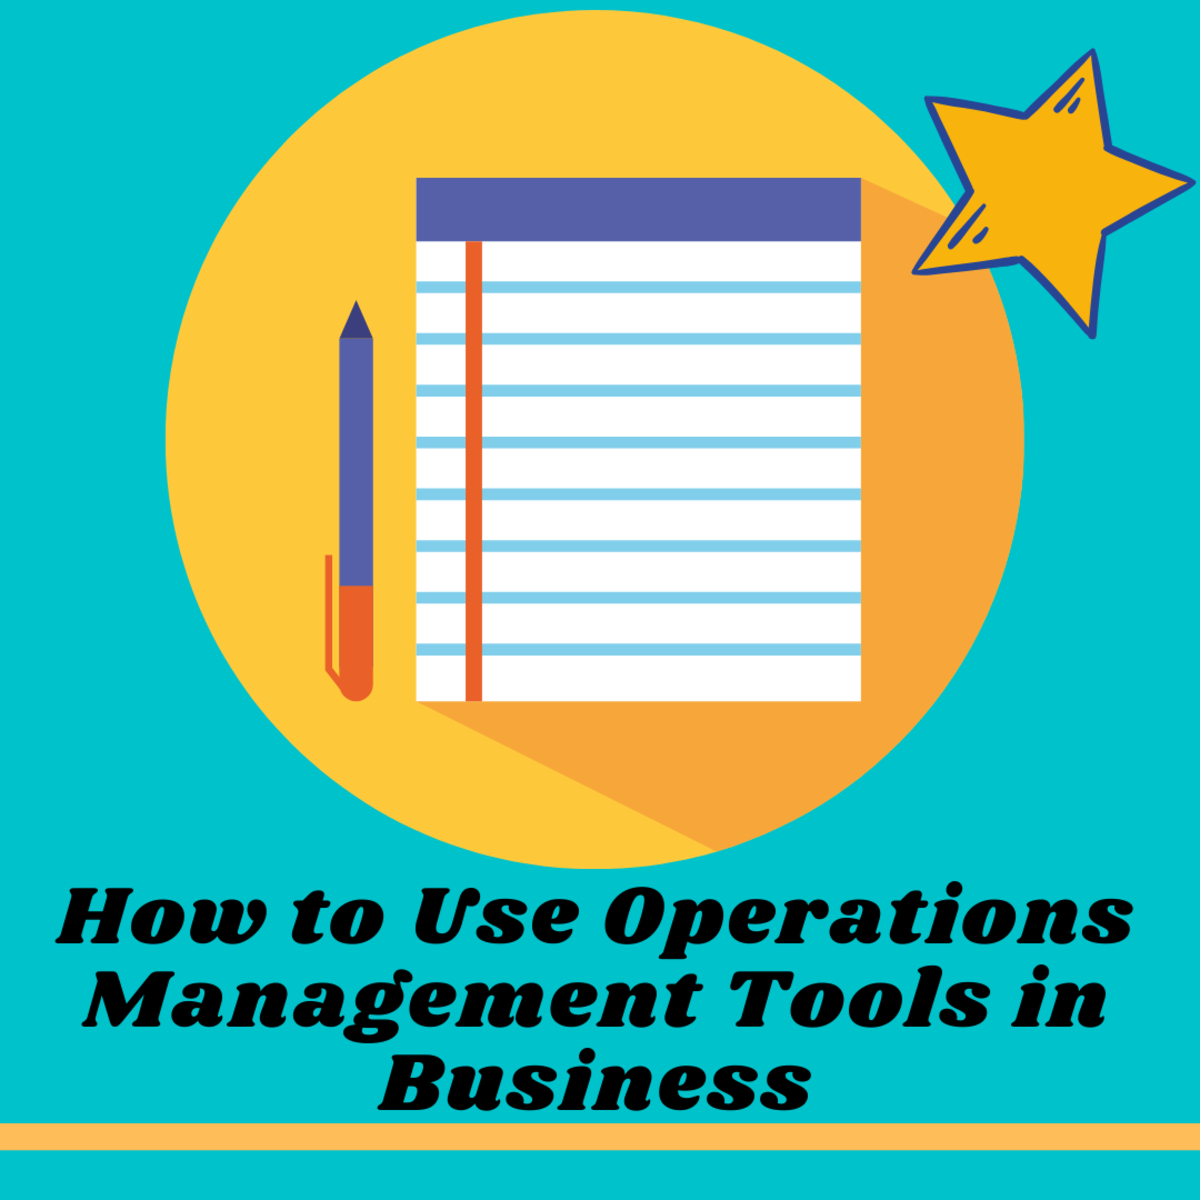 How to Use Operations Management Tools in Business